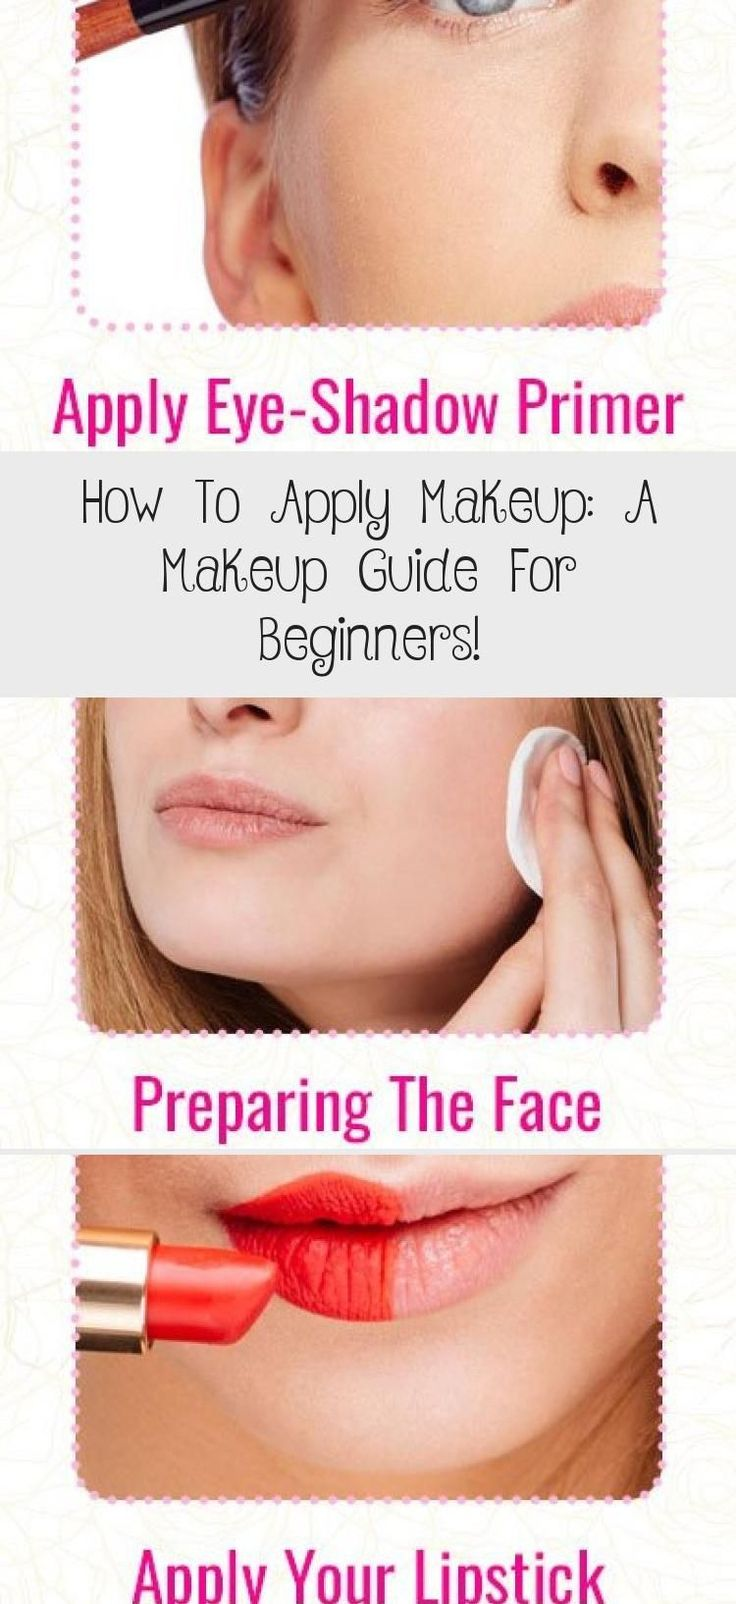 HowToApplyMakeup A Makeup Guide For Beginners!